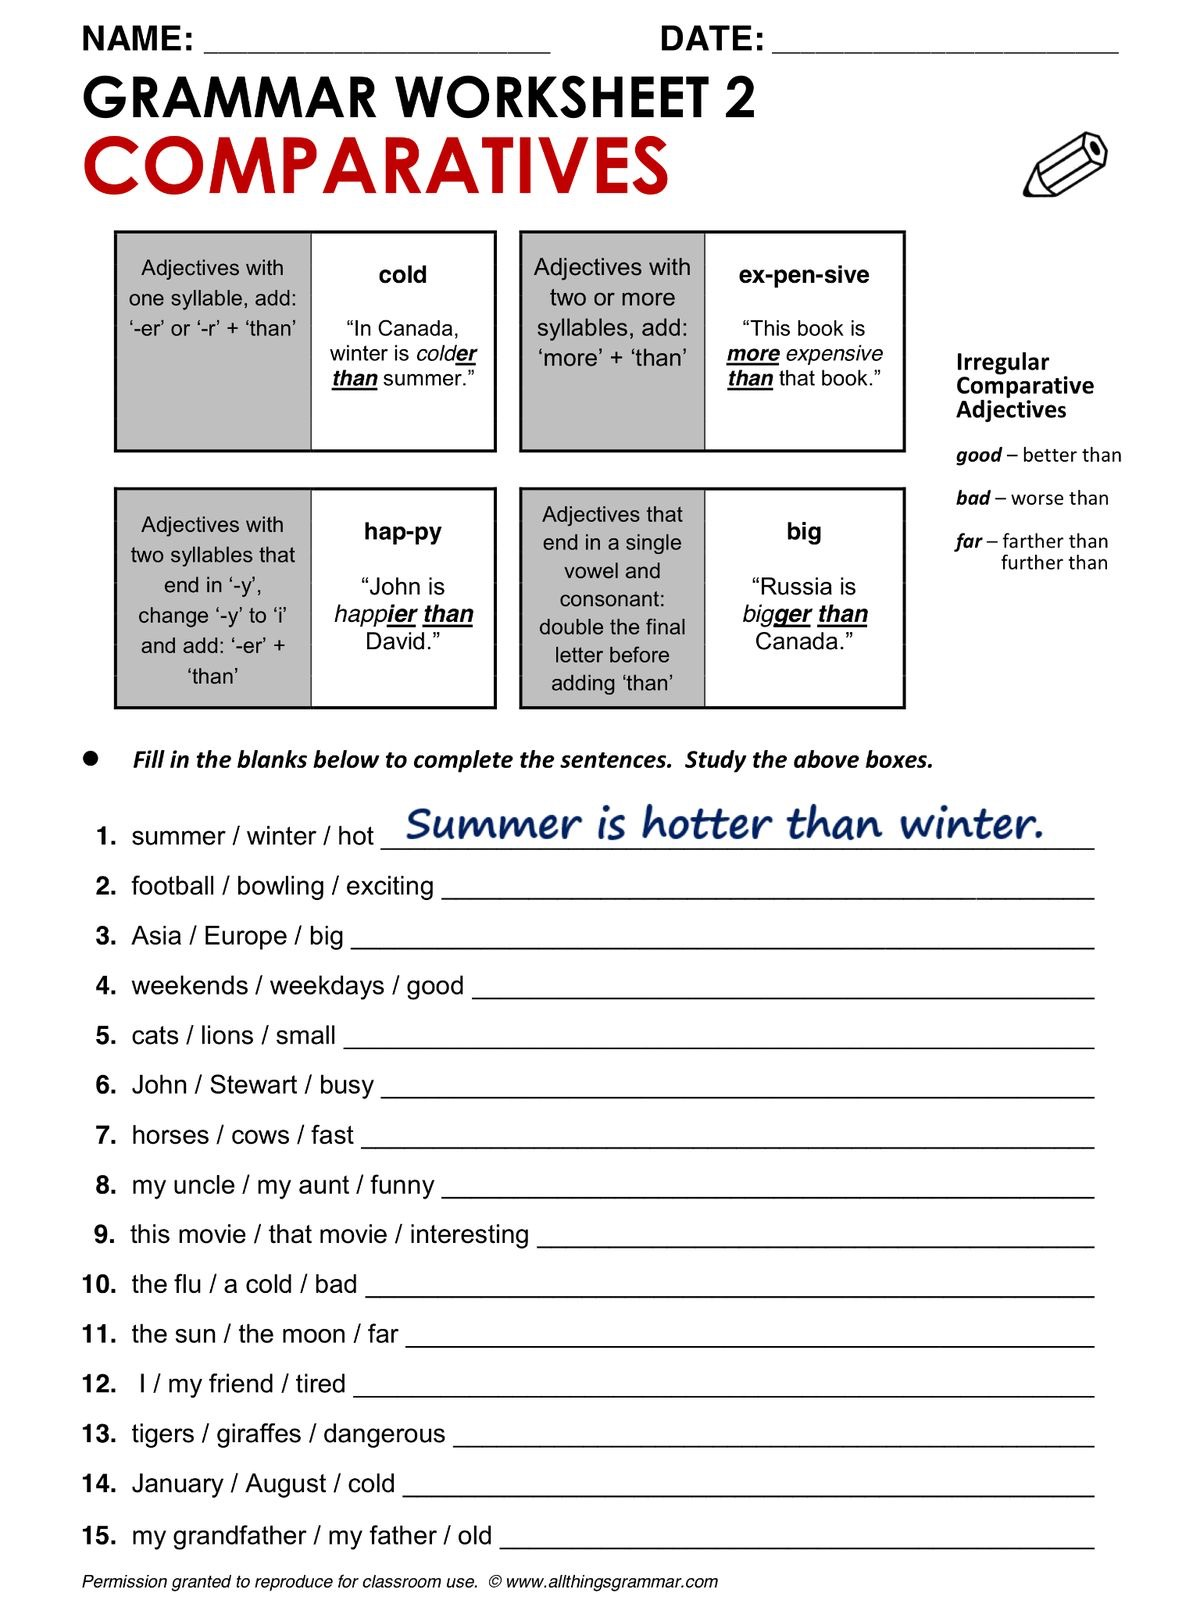 Comparatives Worksheet